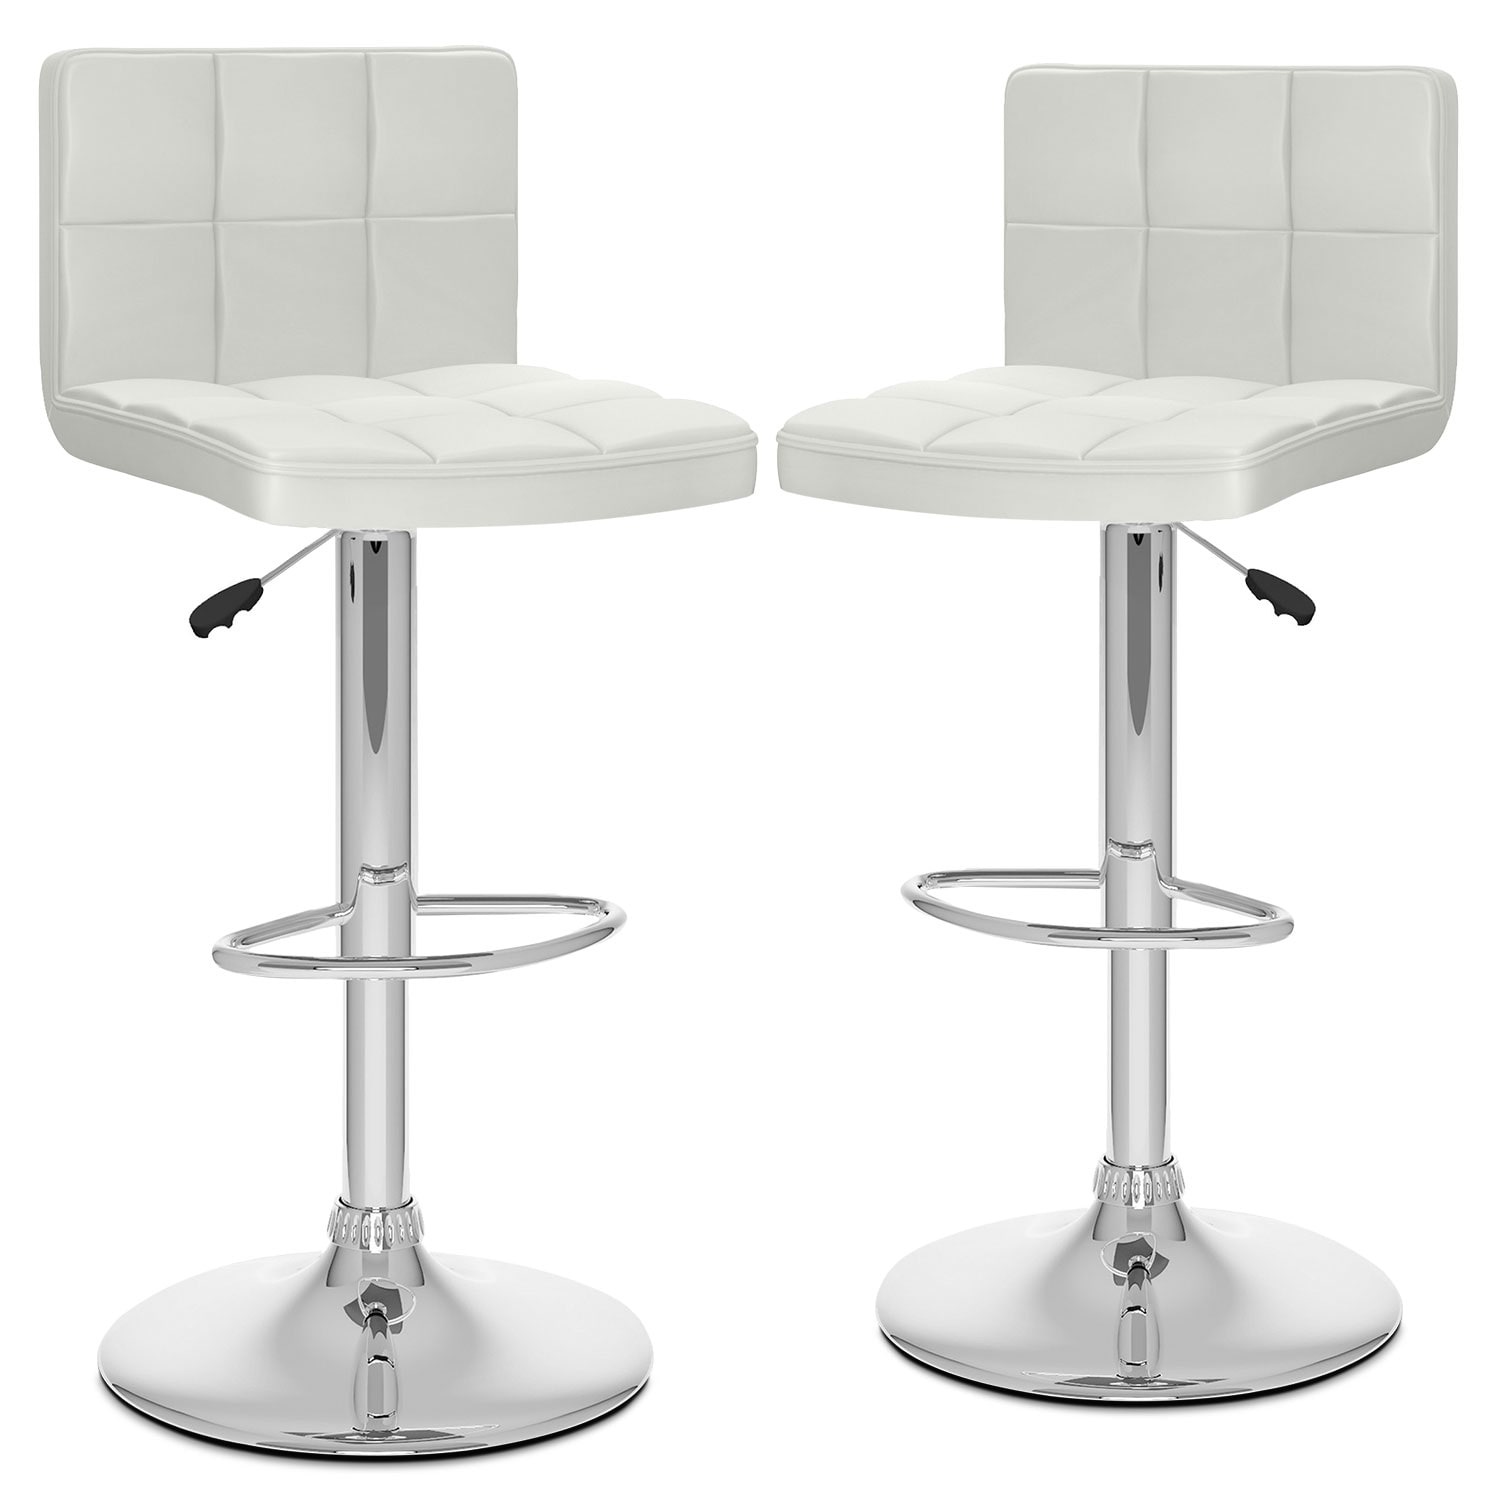 CorLiving High-Back Adjustable Bar Stool, Set of 2 – White